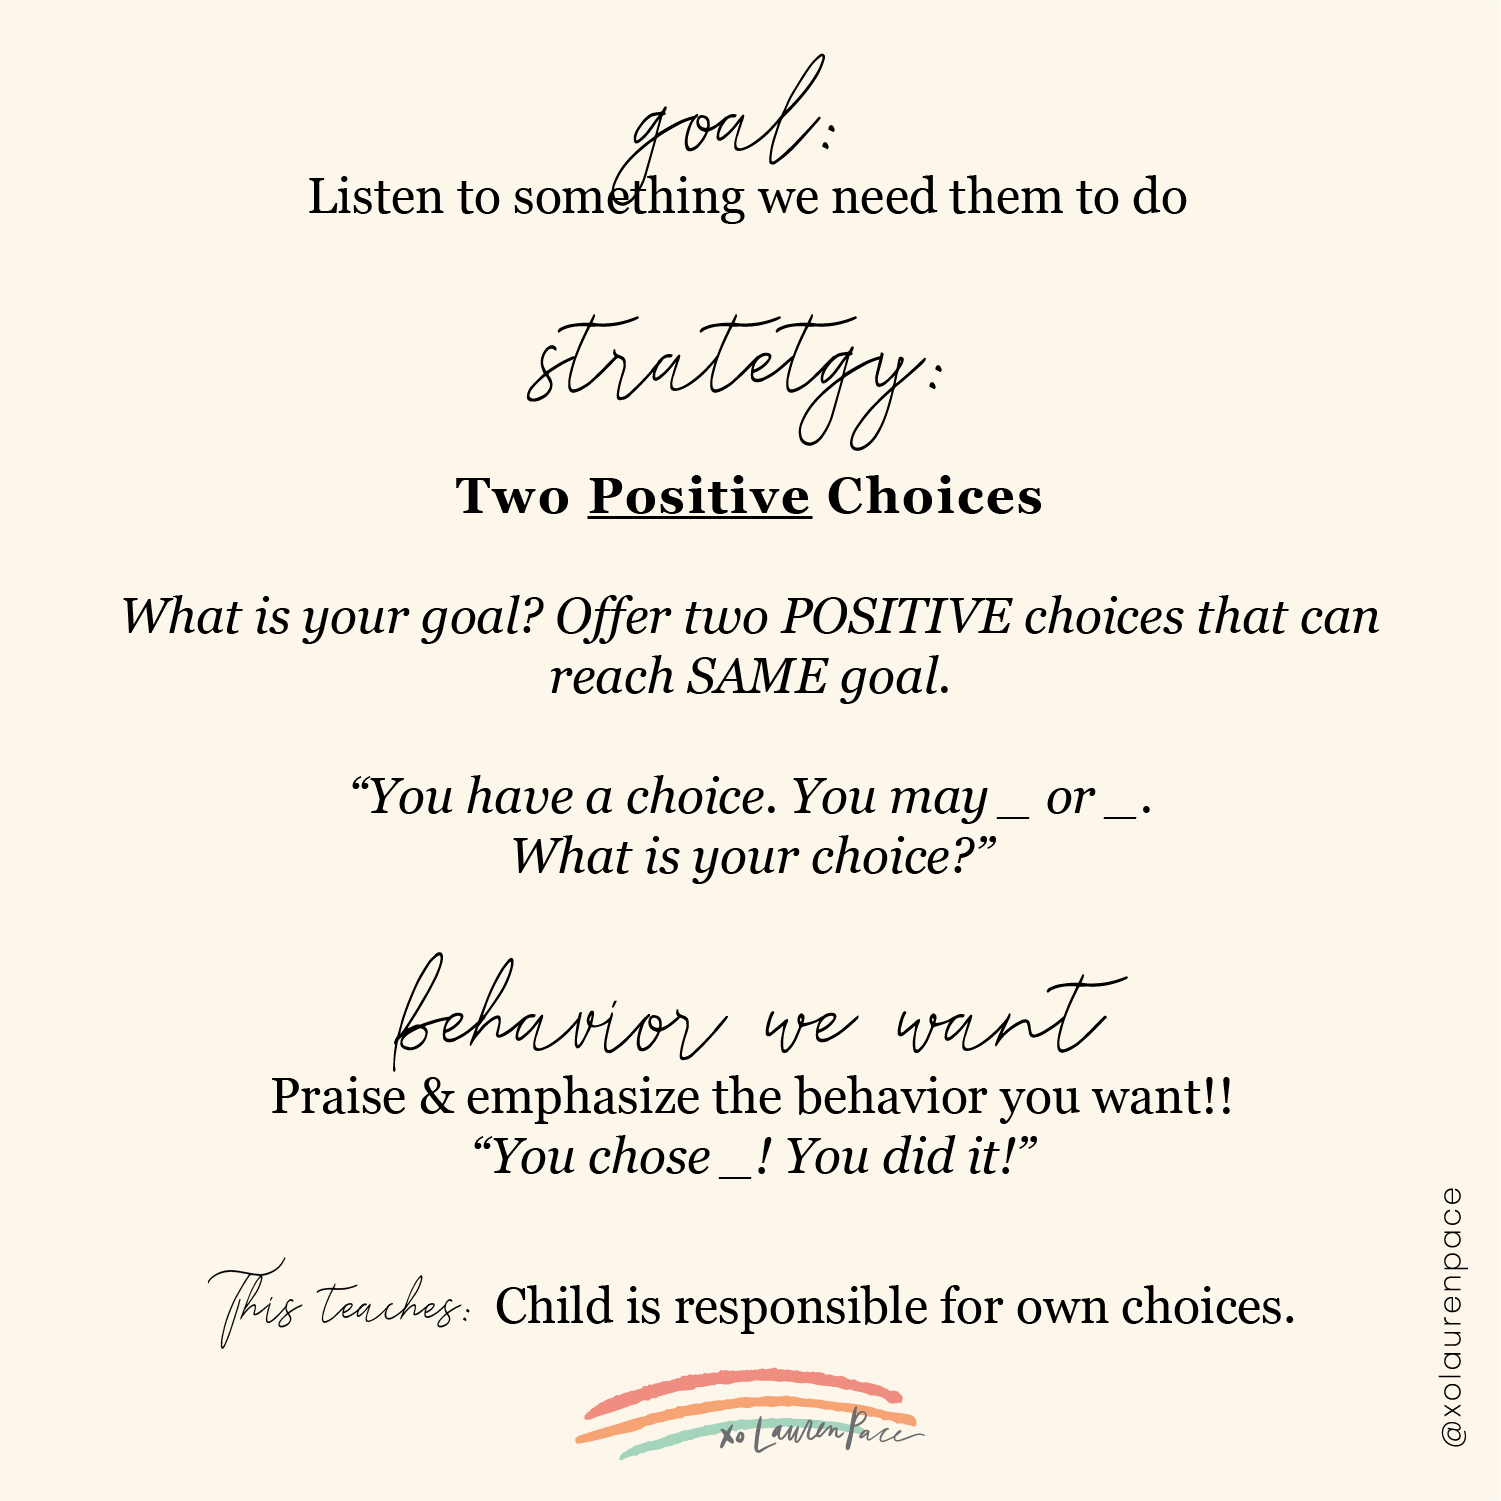 Strategy for helping children listen: Two Positive Choices